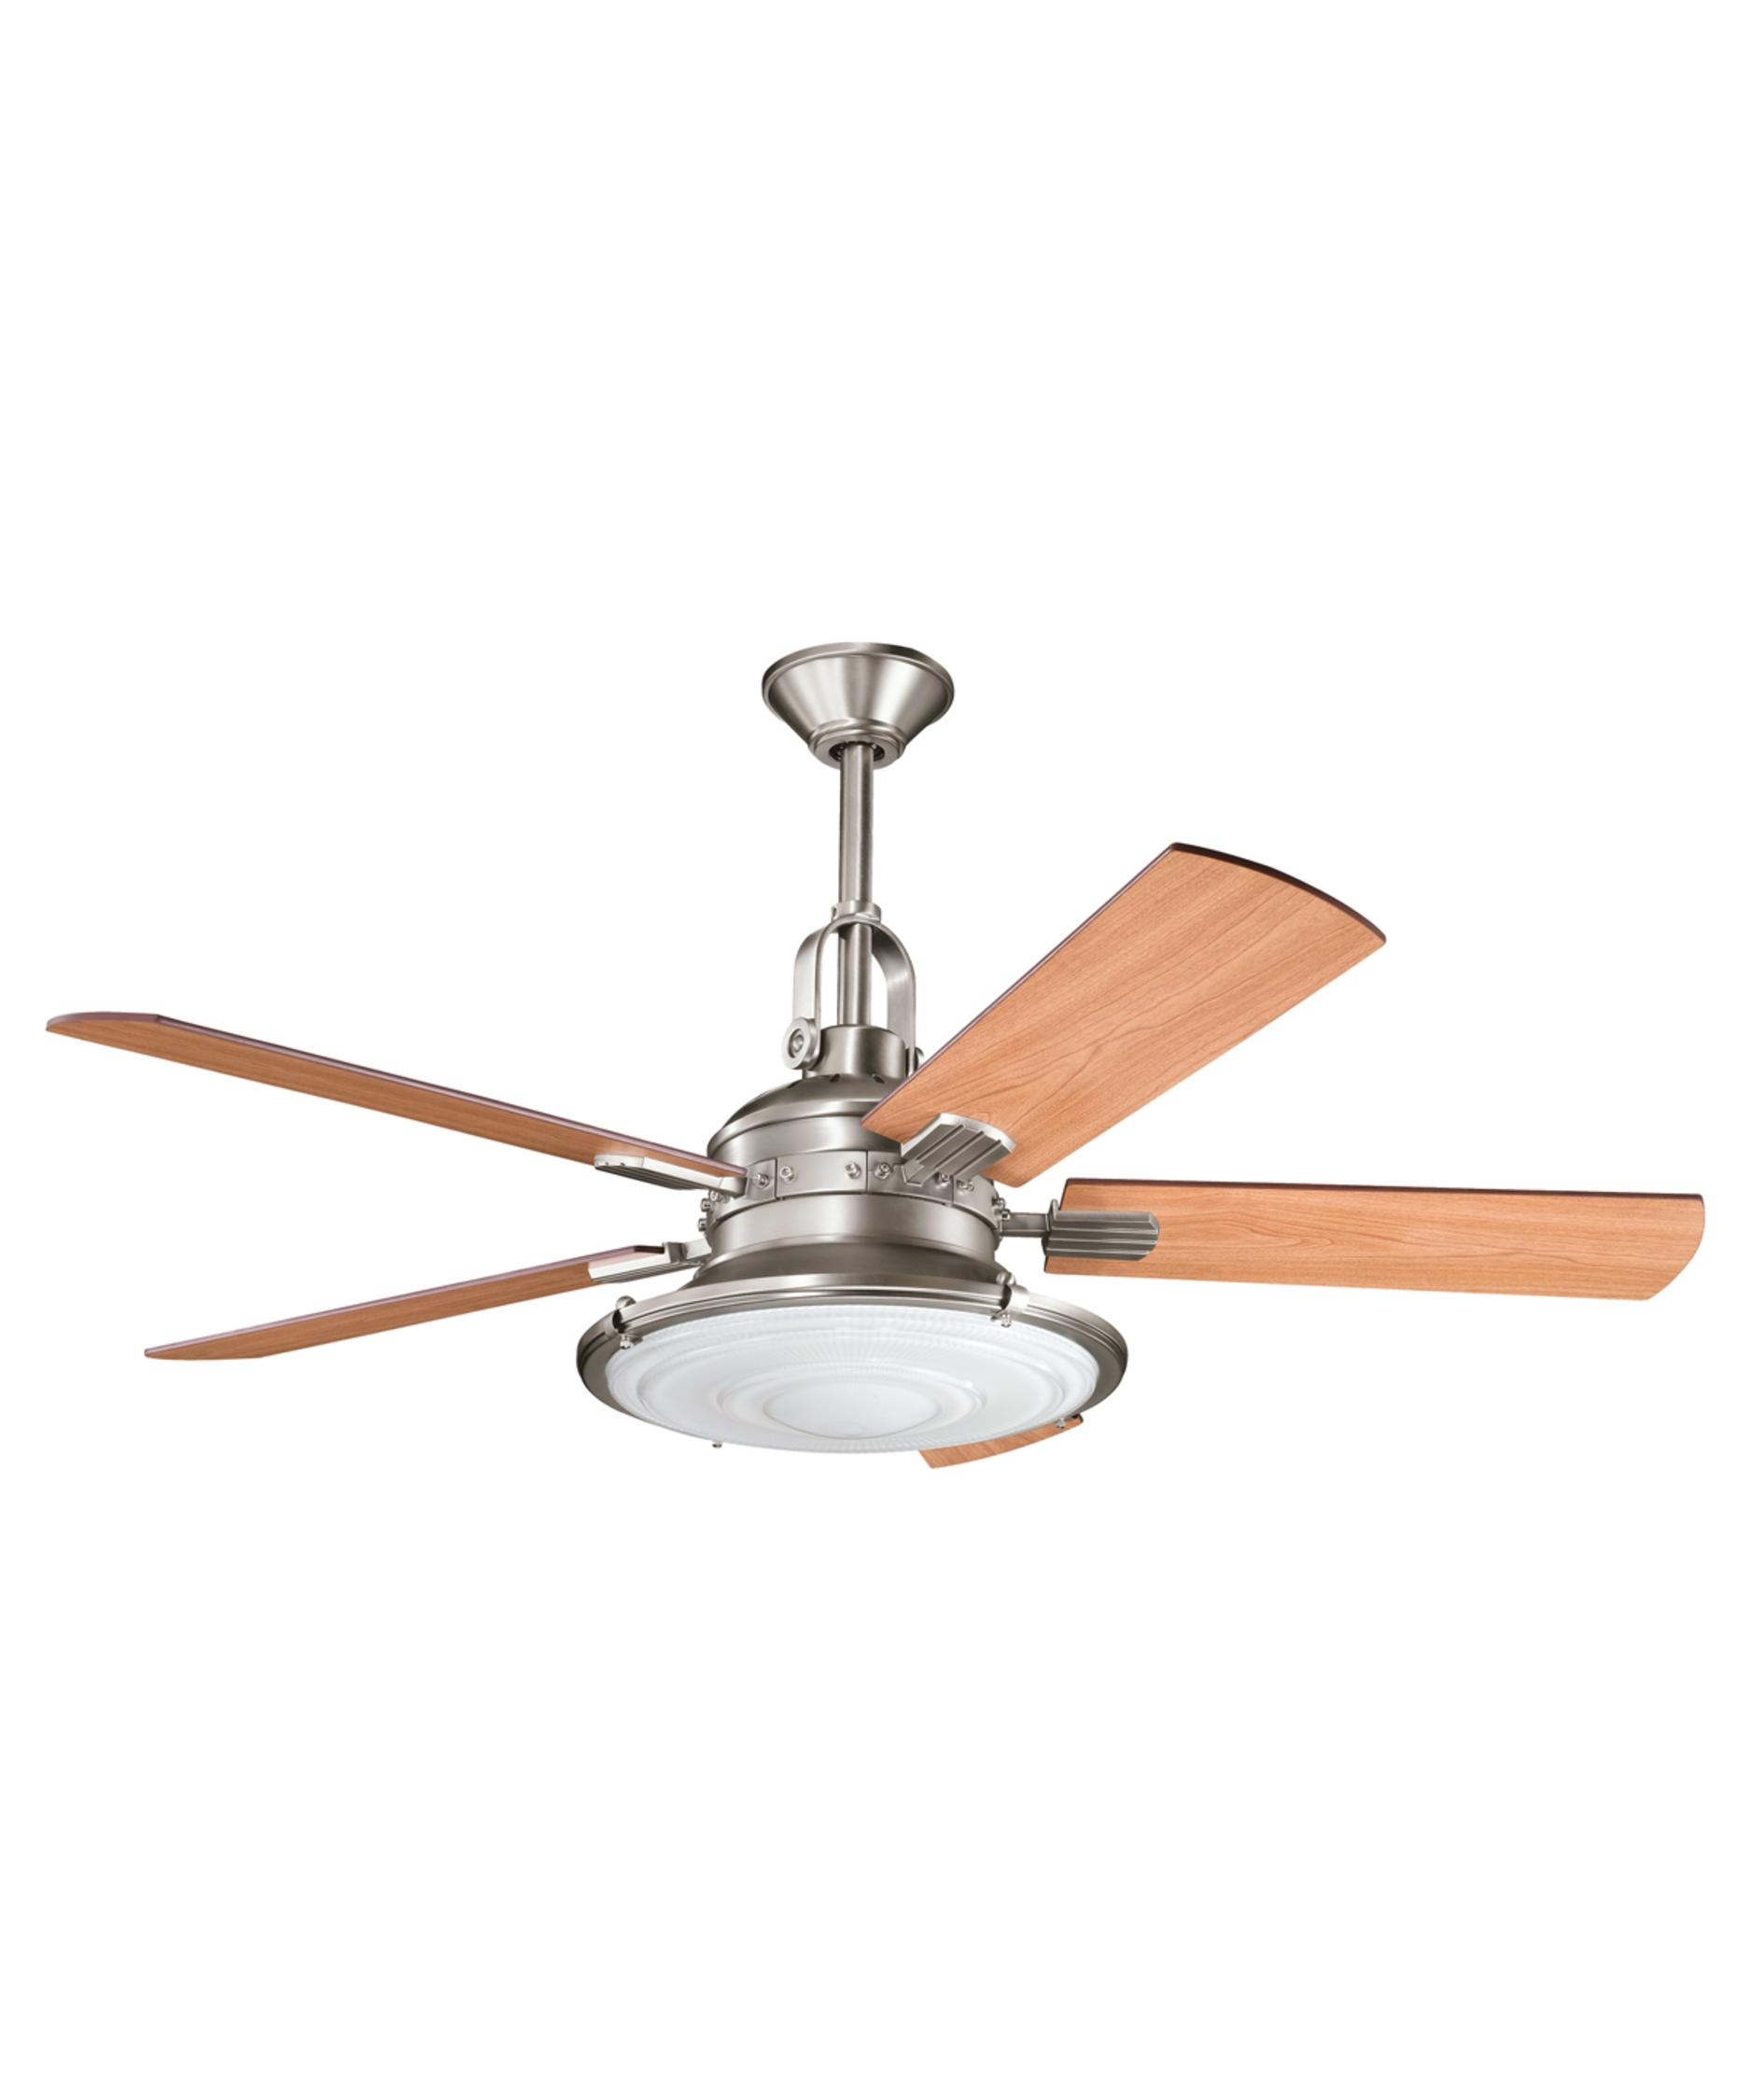 kichler 300020 kittery point 52 inch 5 blade ceiling fan | capitol